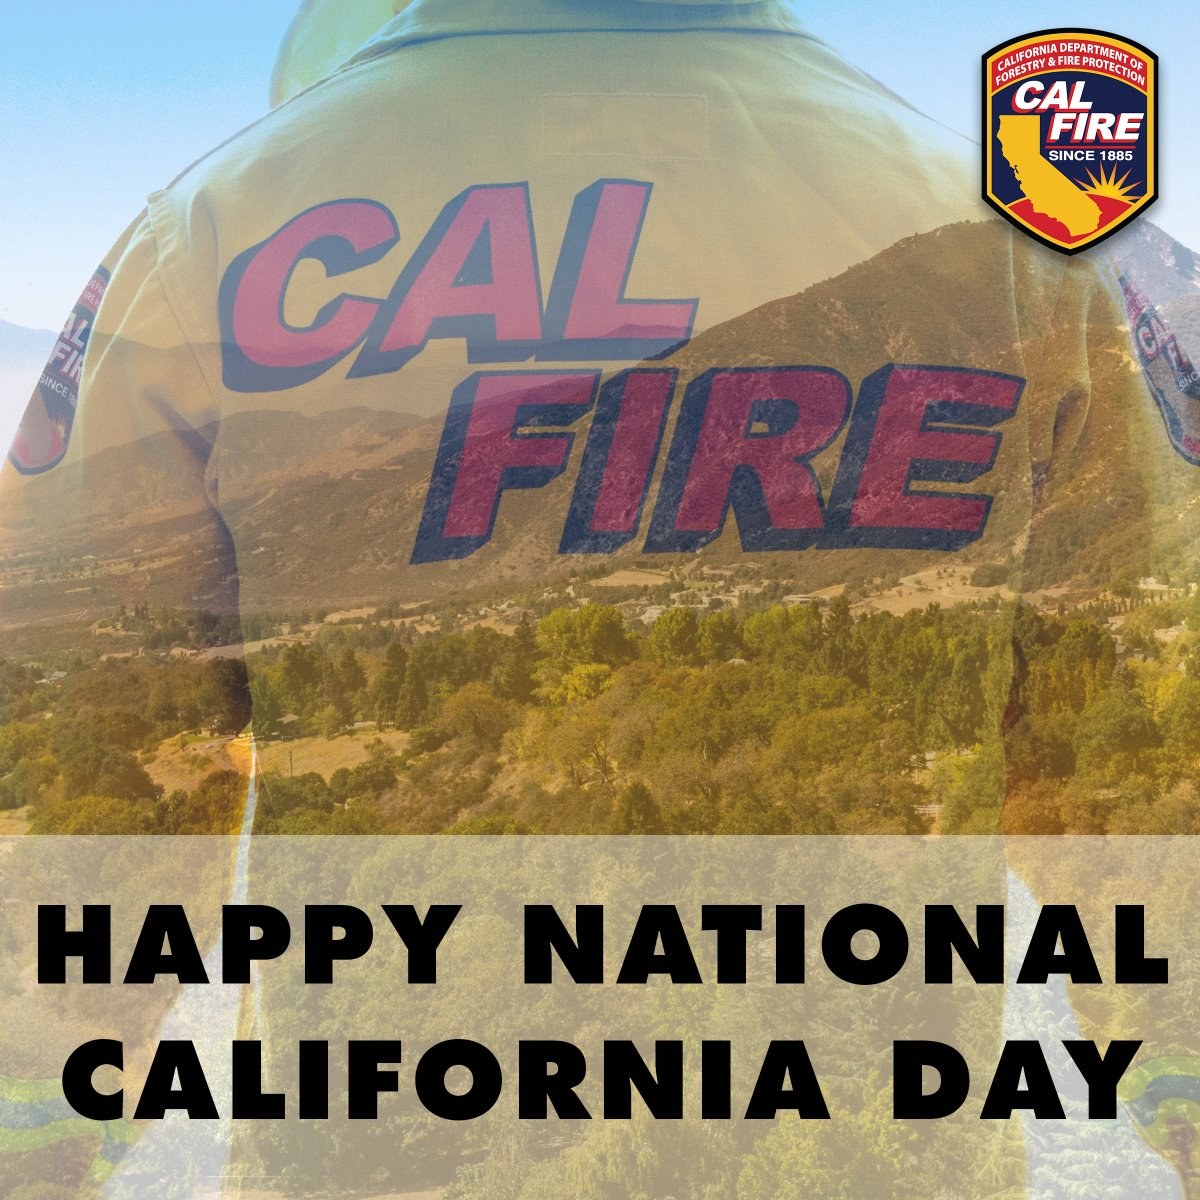 CAL FIRE is proud to serve the people of California, protecting lives and property in the great state since 1885. #NationalCaliforniaDay<br>http://pic.twitter.com/nyq5ldVH8r